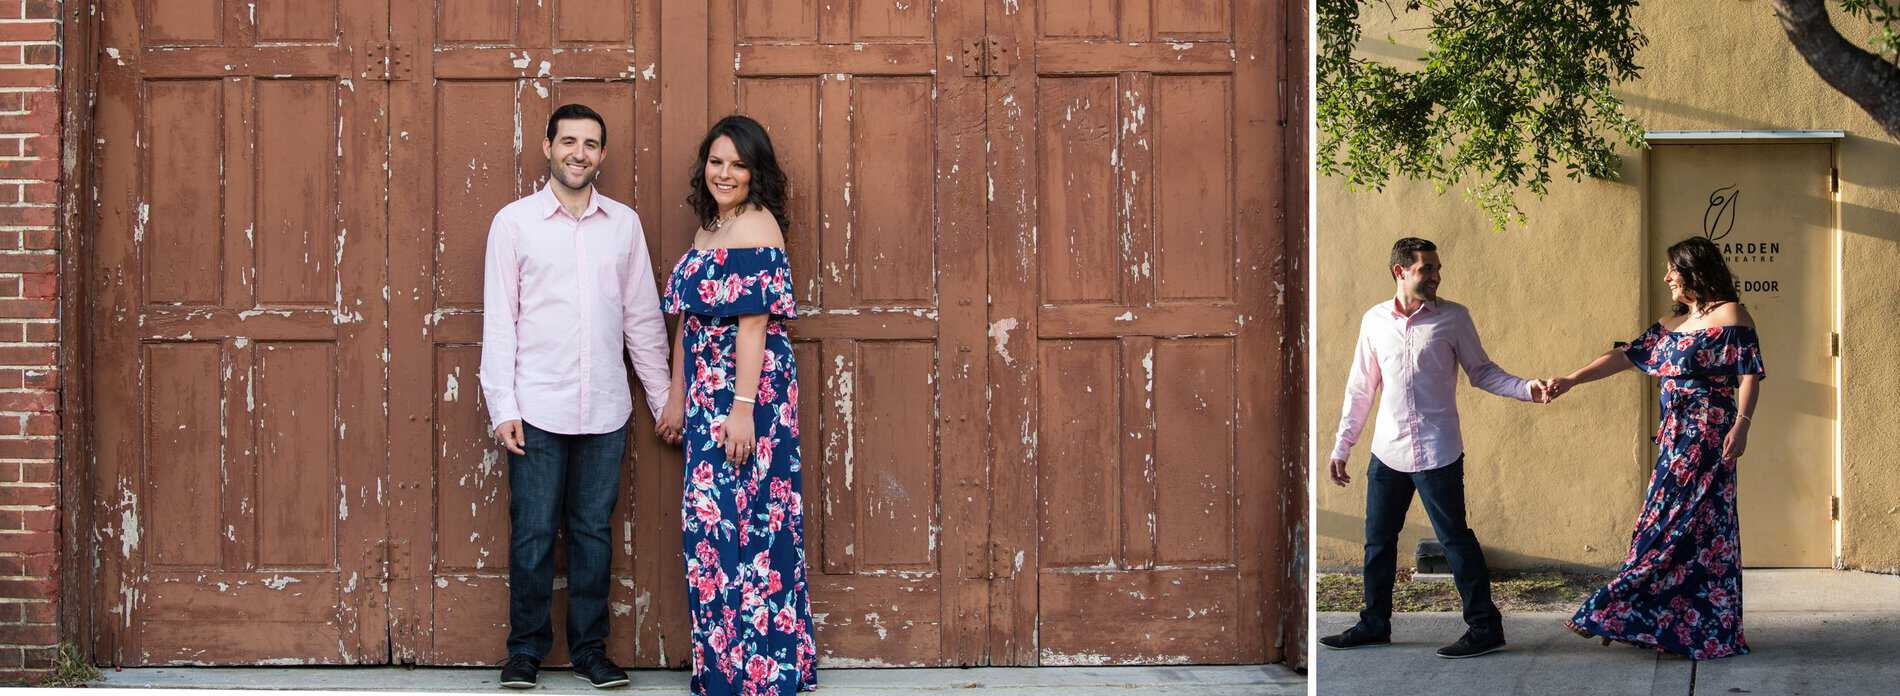 Couple enjoy by the Garden Theater in Winter Garden during their engagement photo session.